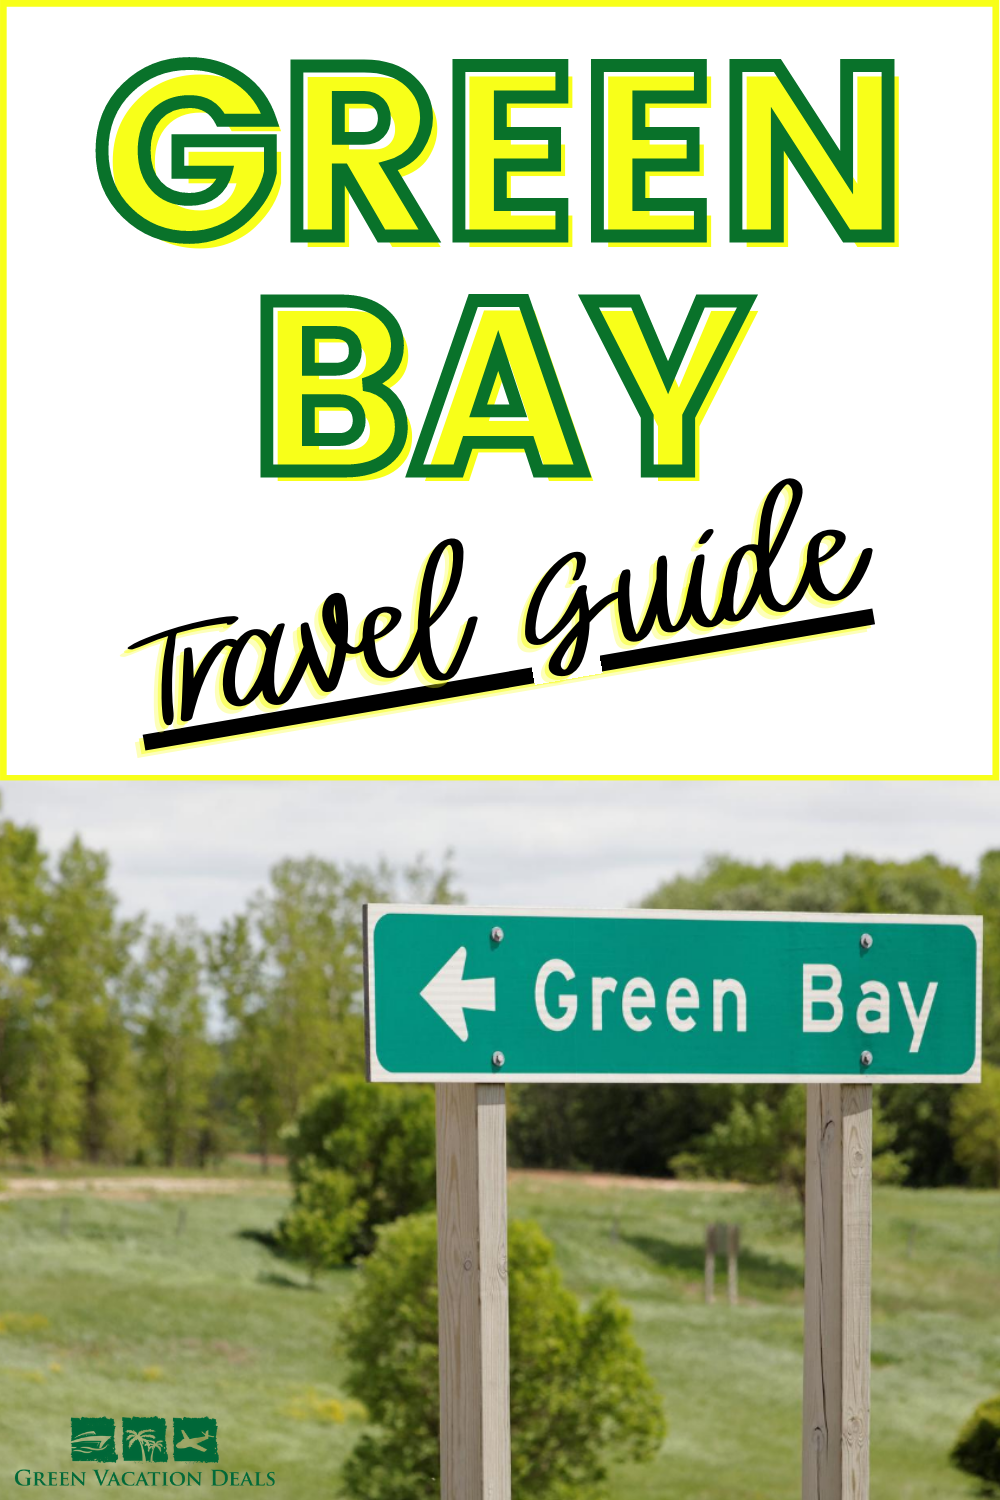 Green Bay, Wisconsin travel guide. Learn about activities, water sports (paddleboarding, kayaking, etc), tours (Lambau Field & more) & how to save money on hotels. #GreenBay #Wisconsin #MidwestTravel #cheaptravel #budgettravel #budgettraveler #Packers #GoPackGo #LambeauField #watersports #Kayaking #whitewaterrafting #raftng #paddleboarding #hotel